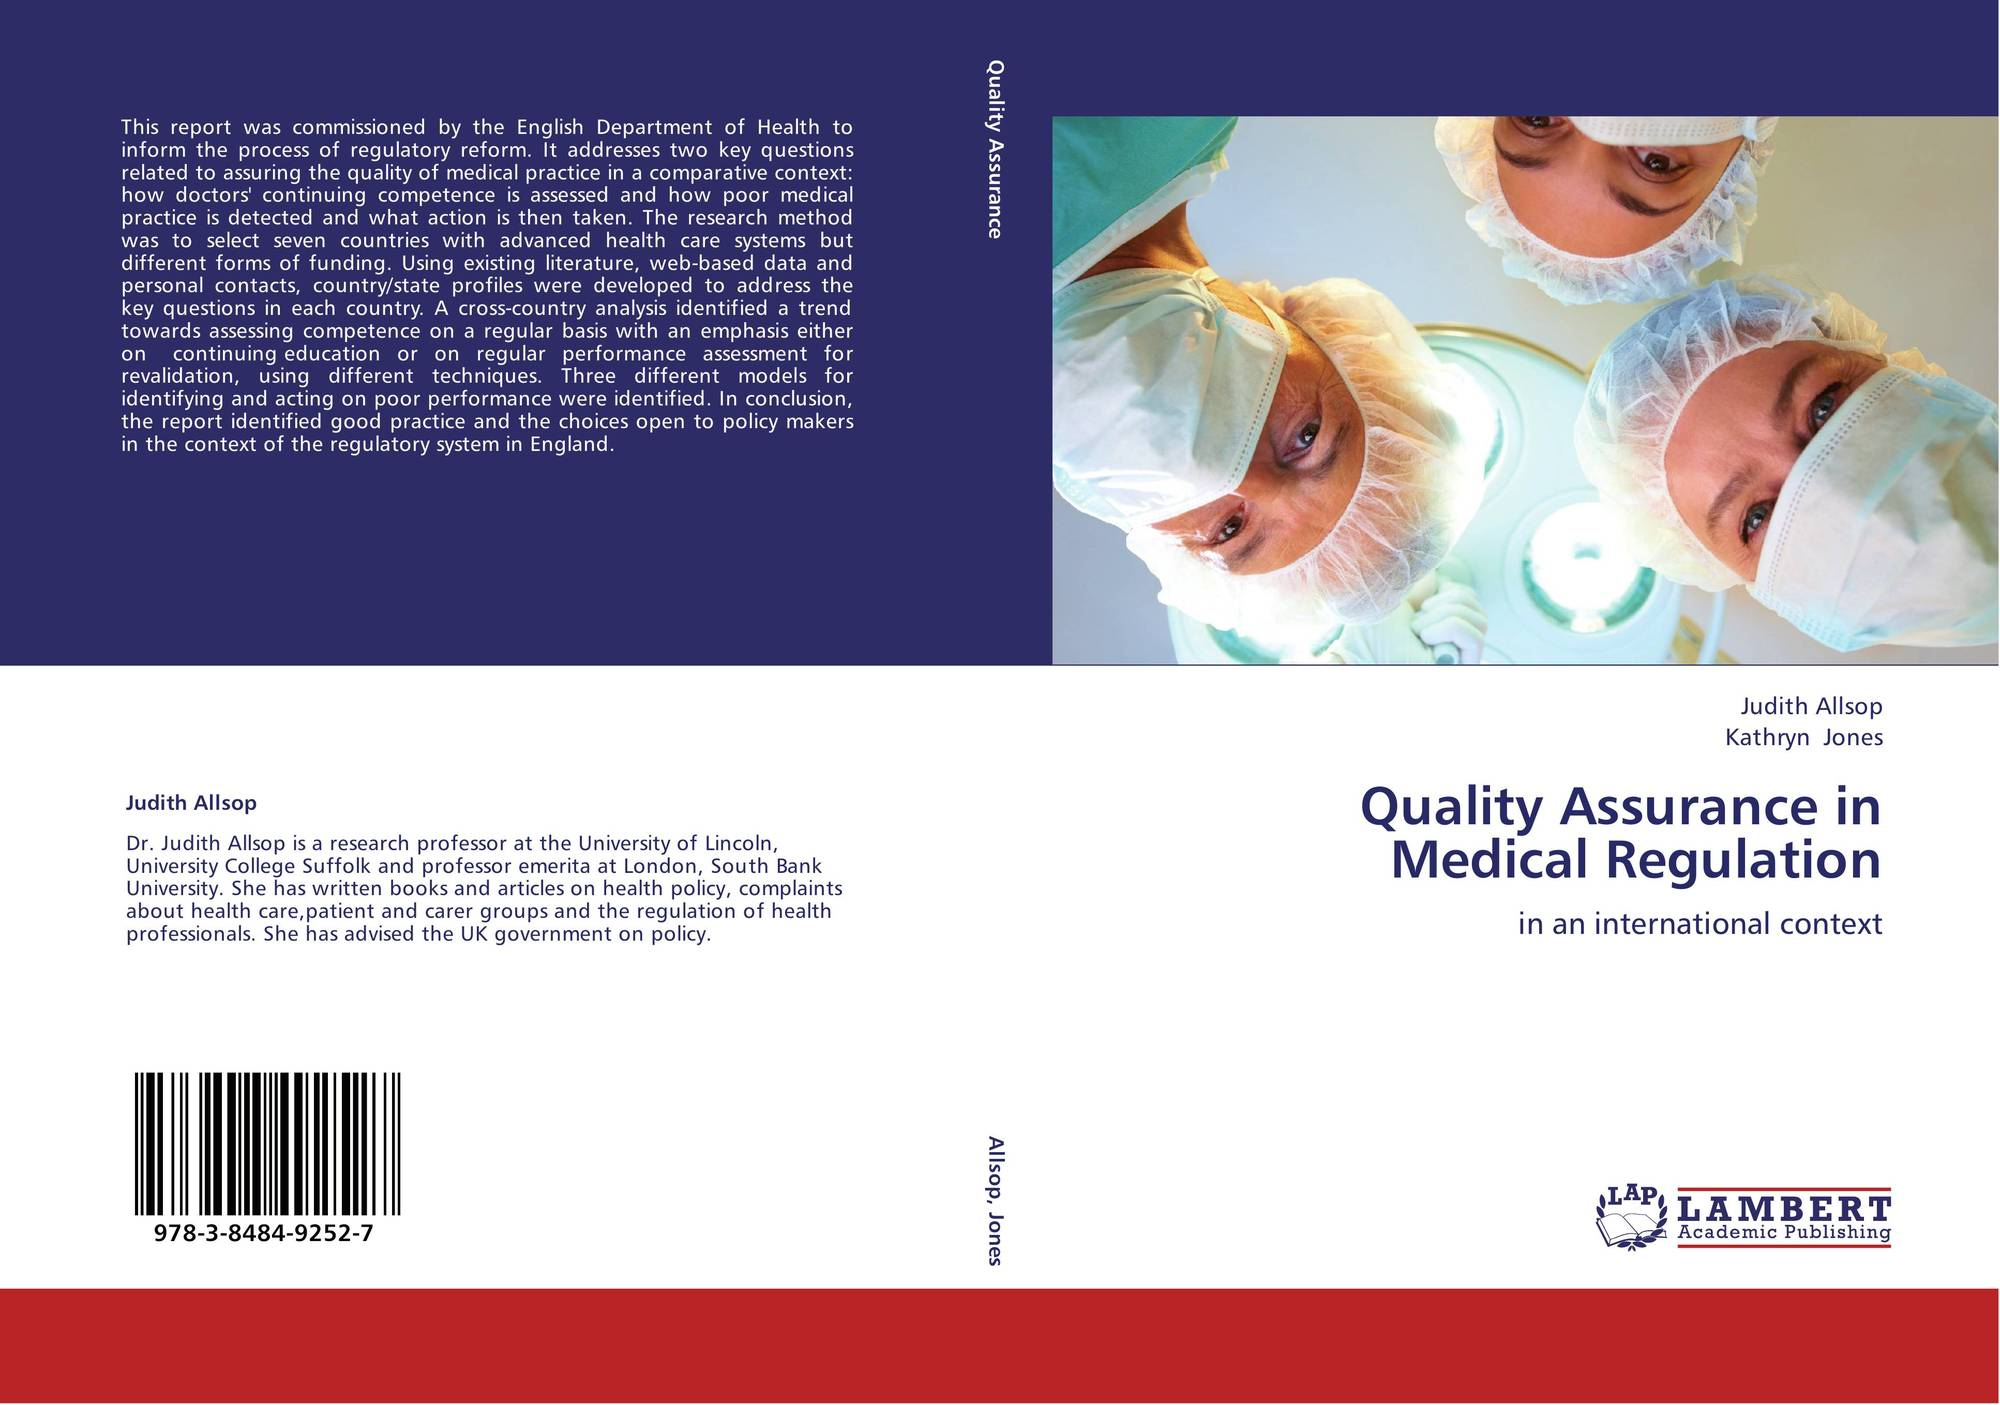 Quality Assurance in Medical Regulation